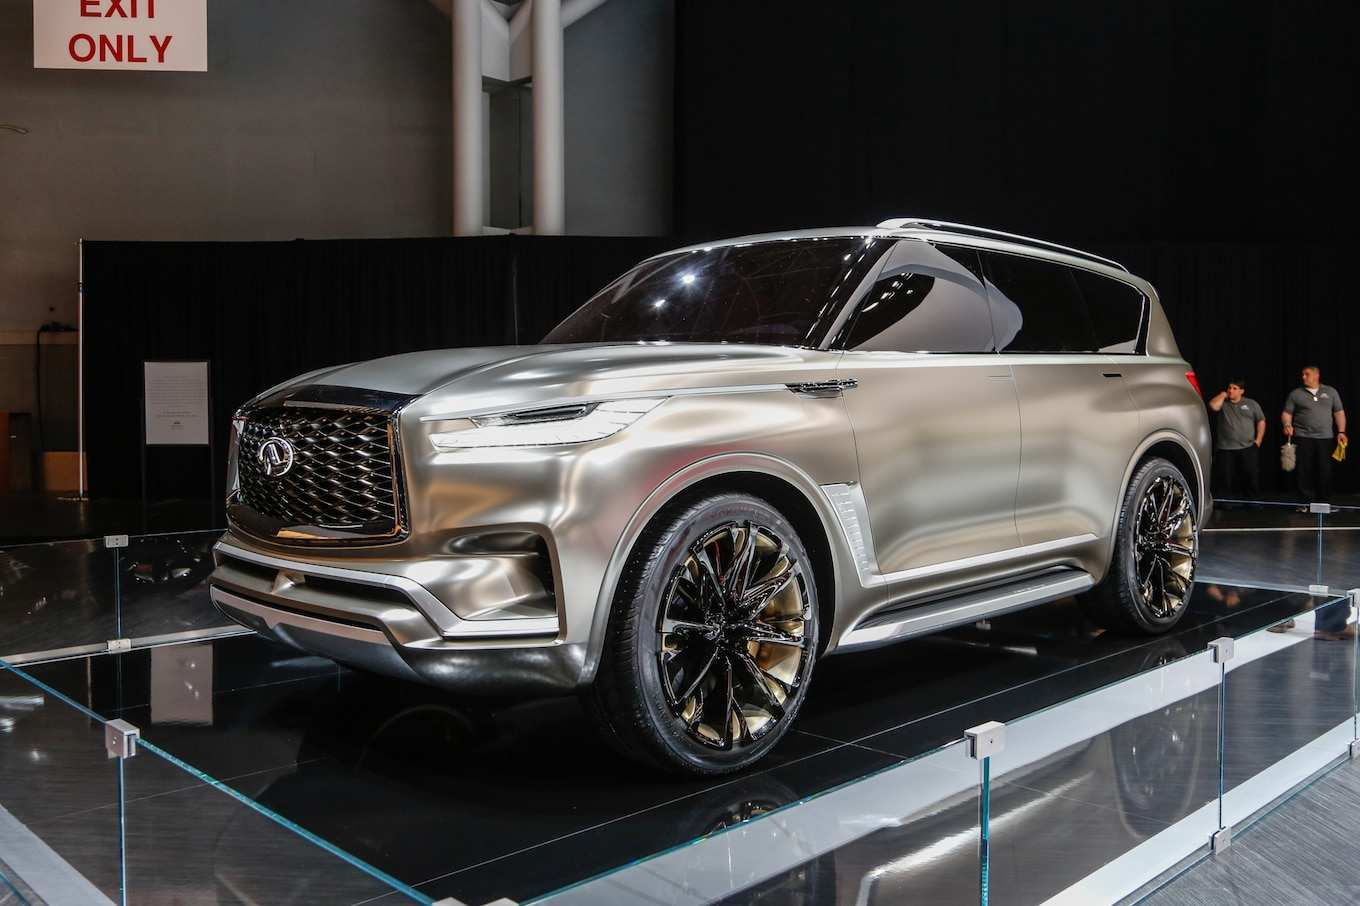 84 New 2020 Infiniti Qx80 Concept Speed Test by 2020 Infiniti Qx80 Concept